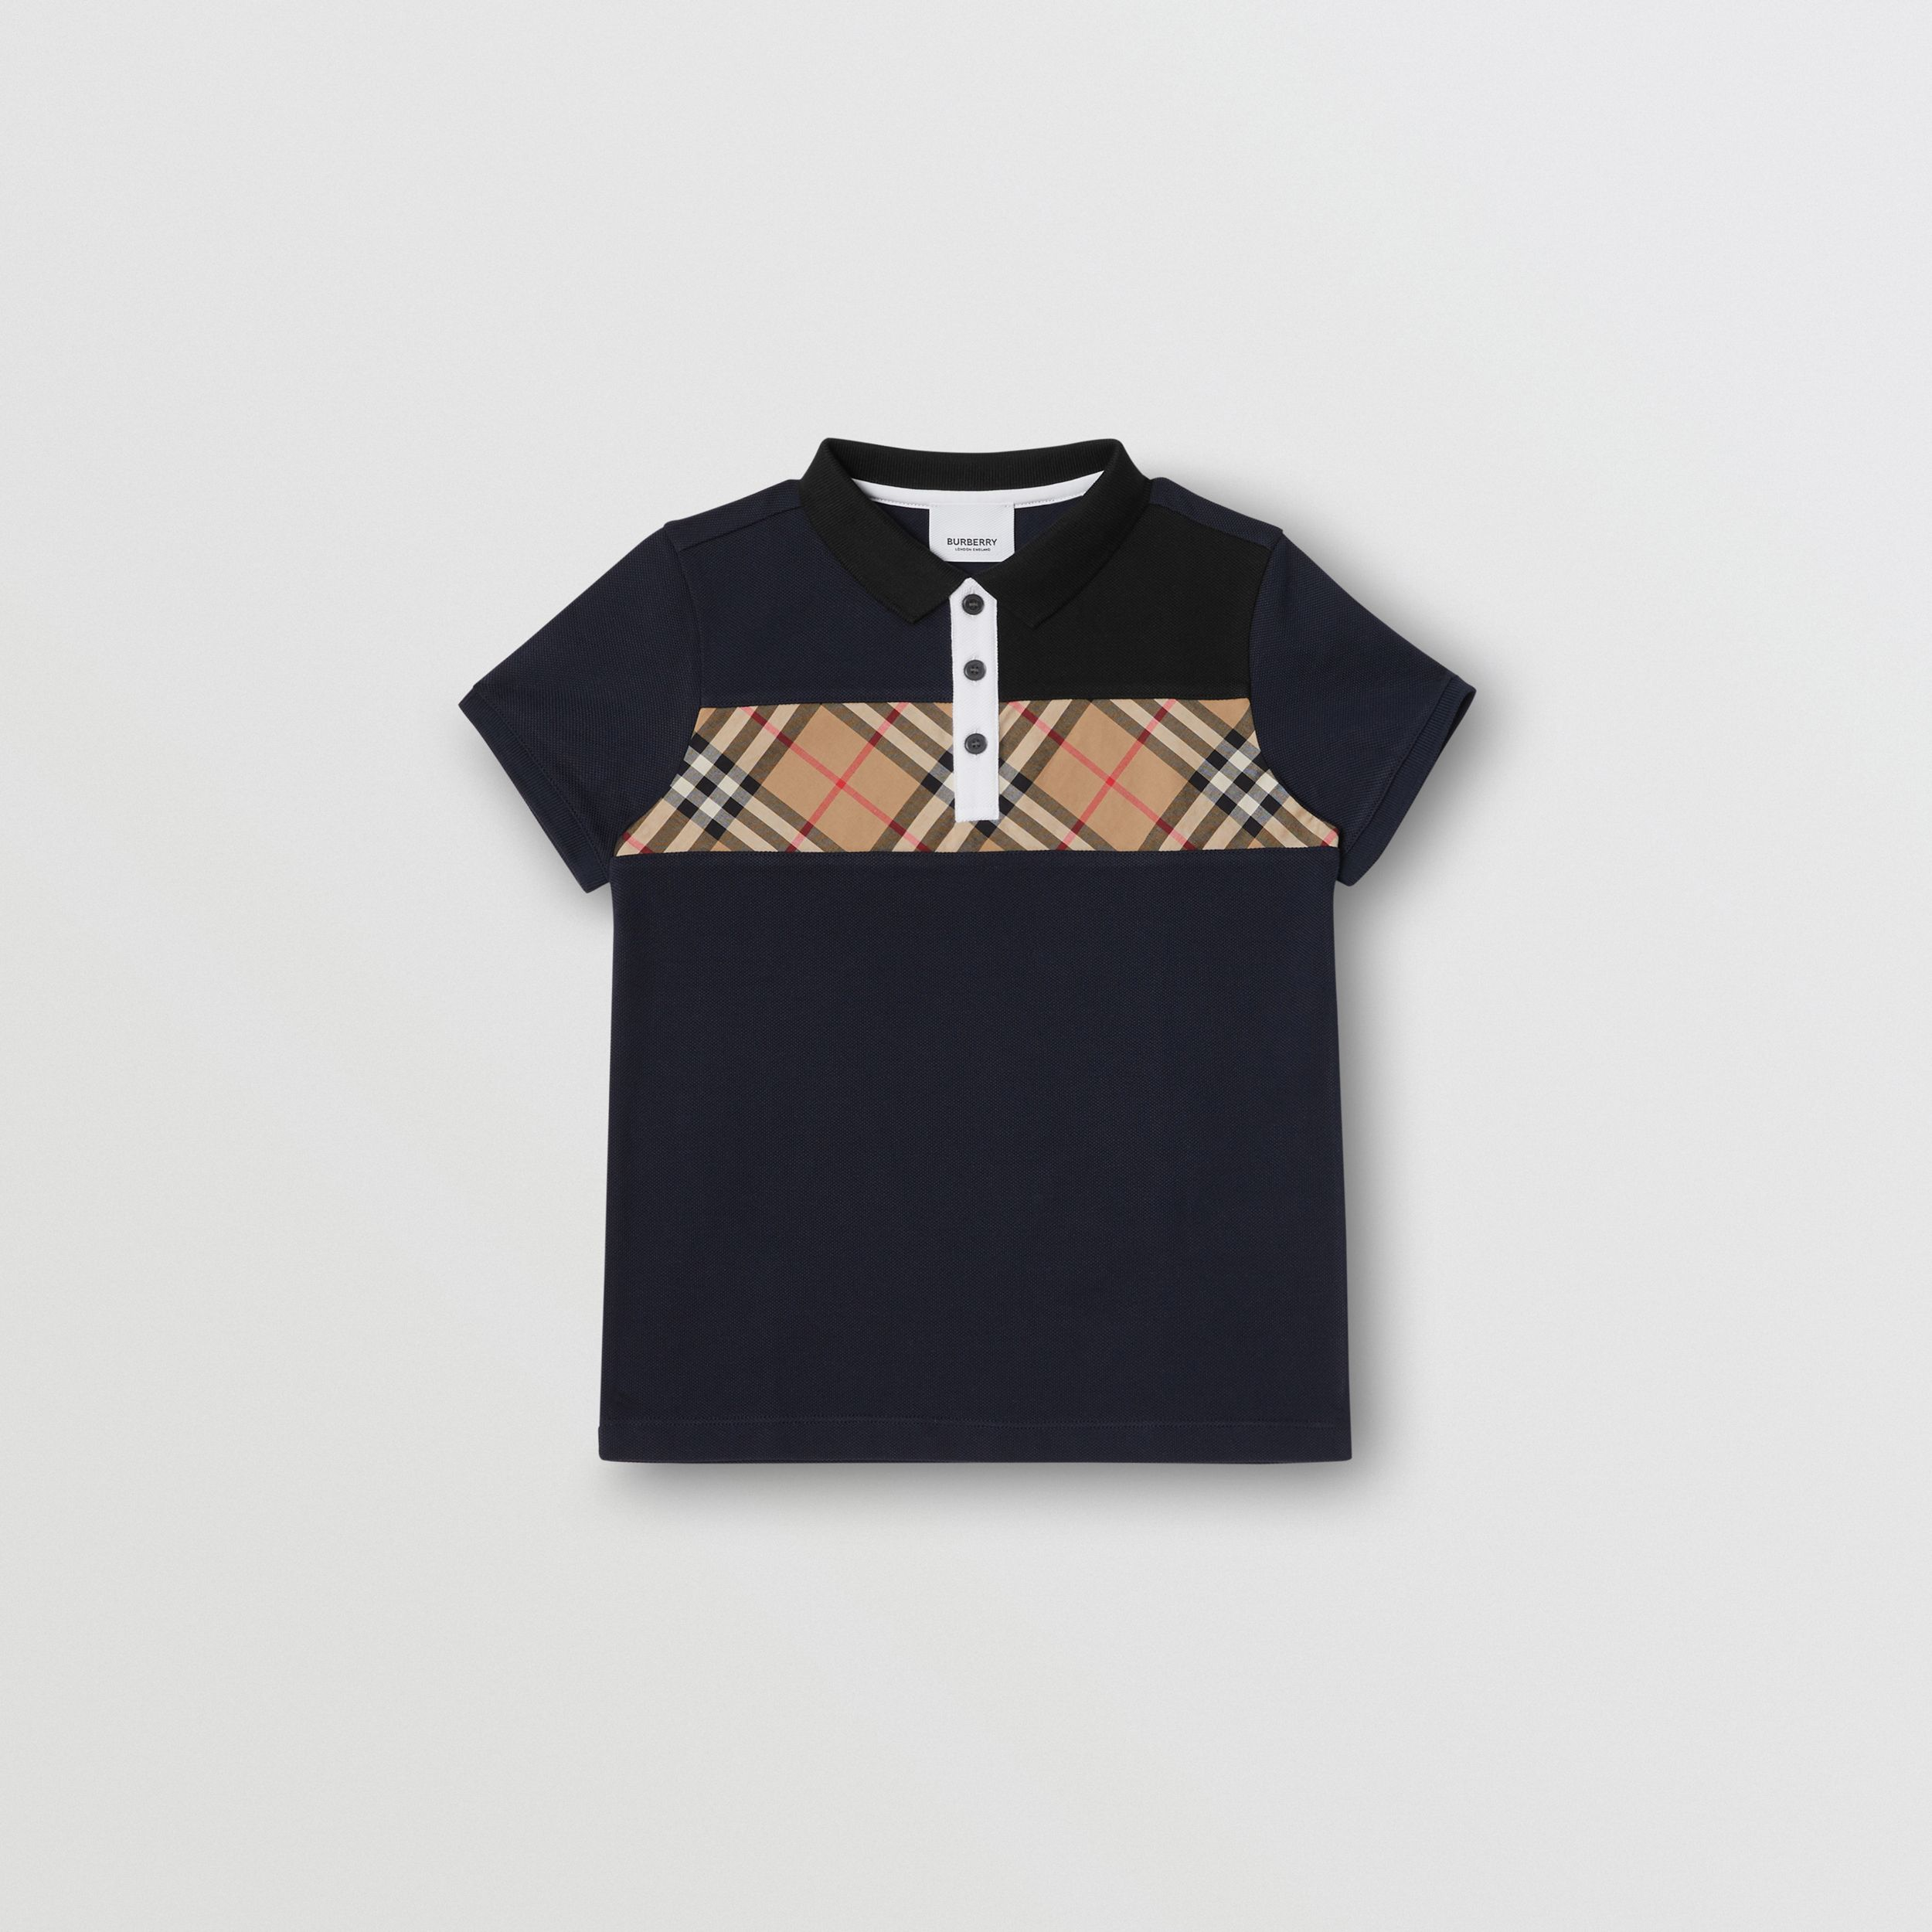 Vintage Check Panel Cotton Polo Shirt in Navy | Burberry - 1